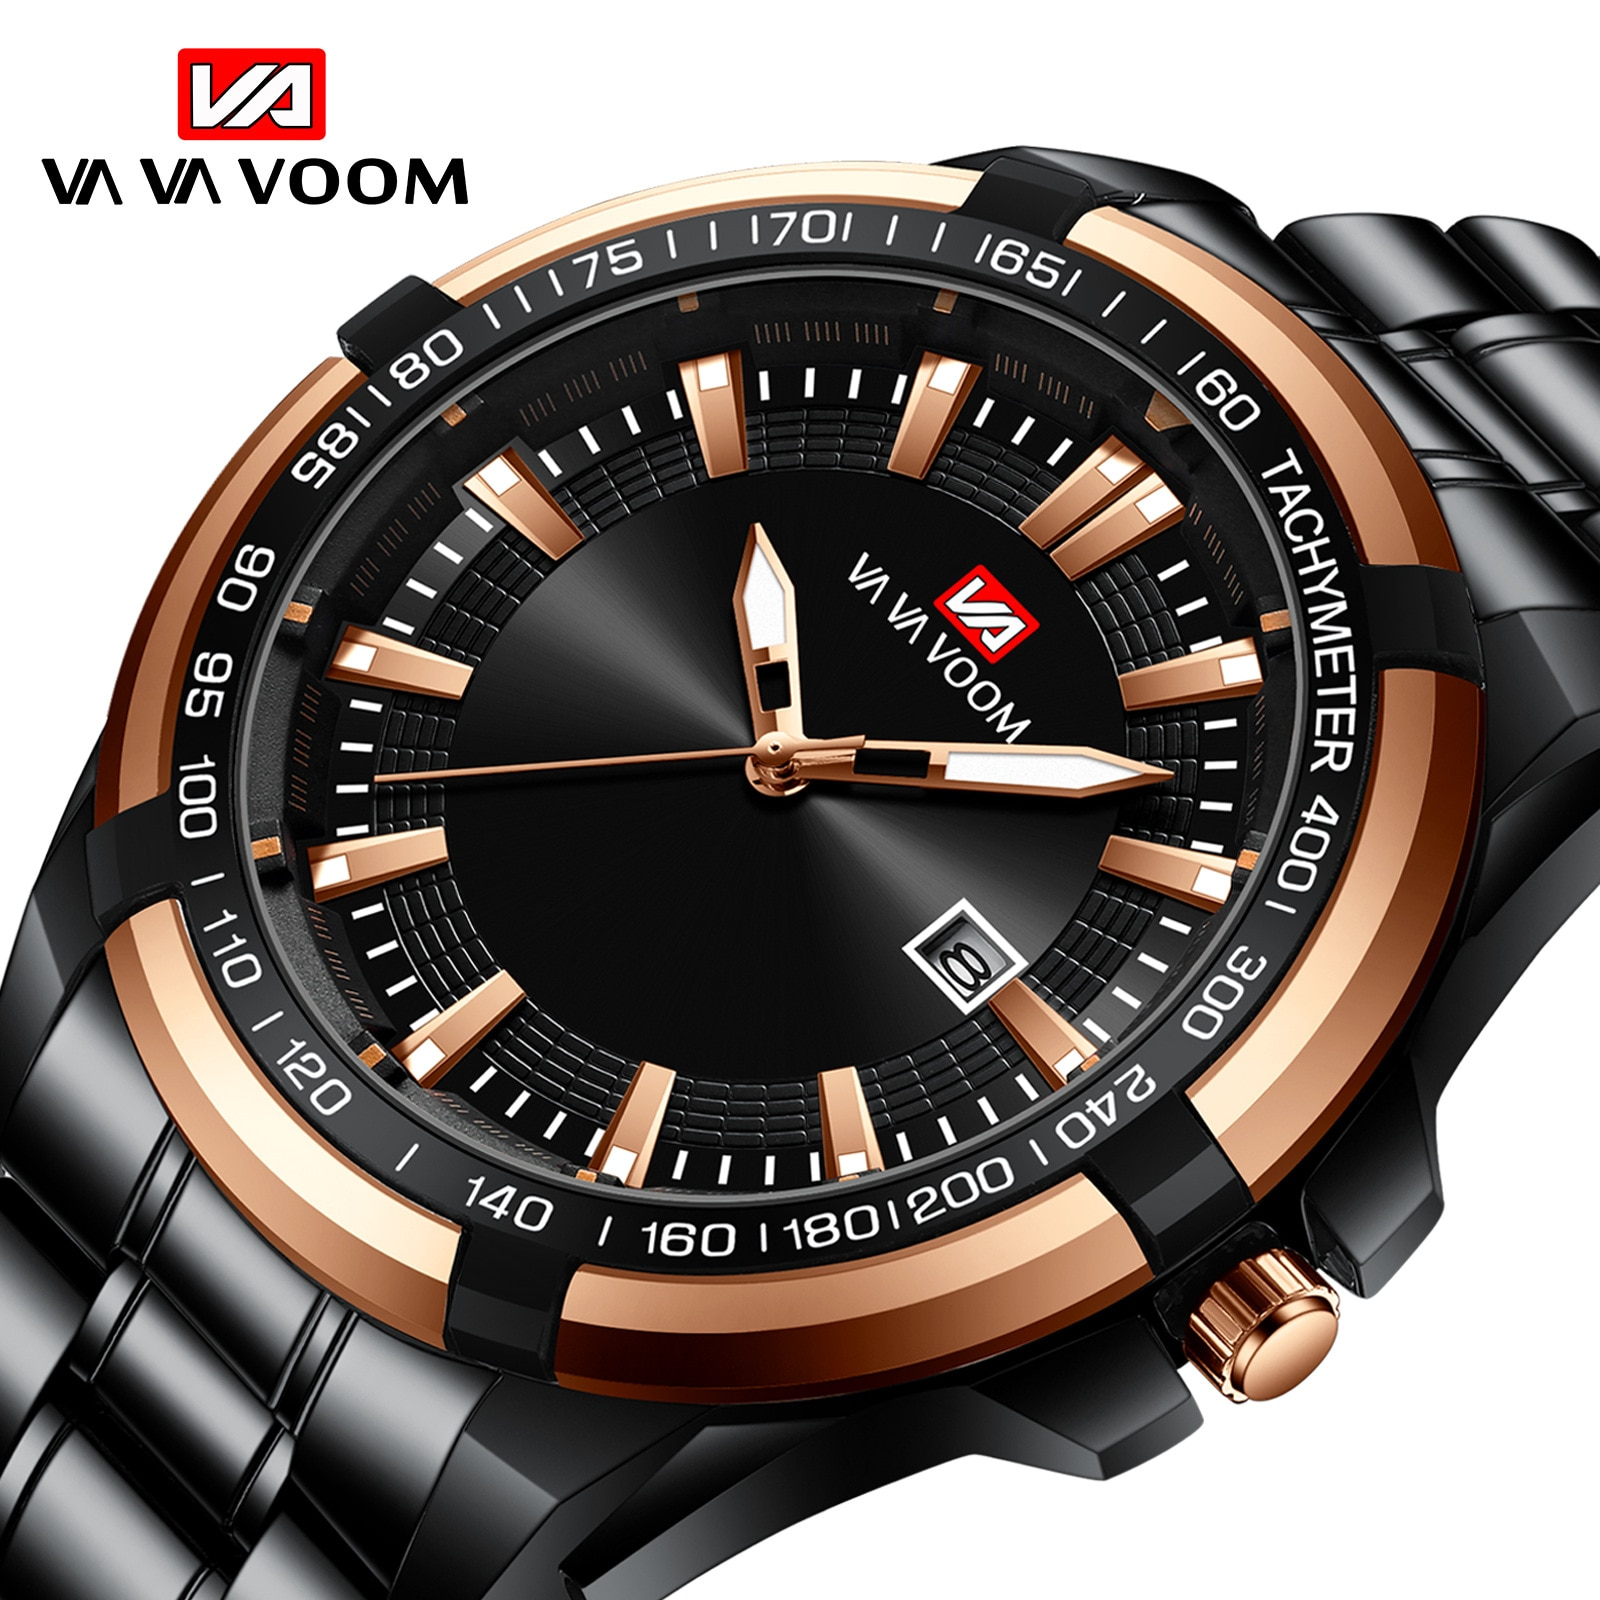 Фото - Watch For Men Stainless Steel Wristwatch Gift Men Dress Business Sports Male Luxury Quartz Waterproof Offers With Free Shipping 2021 new sport travel lover watches carnival red digital clock gift for men waterproof electronics offers with free shipping